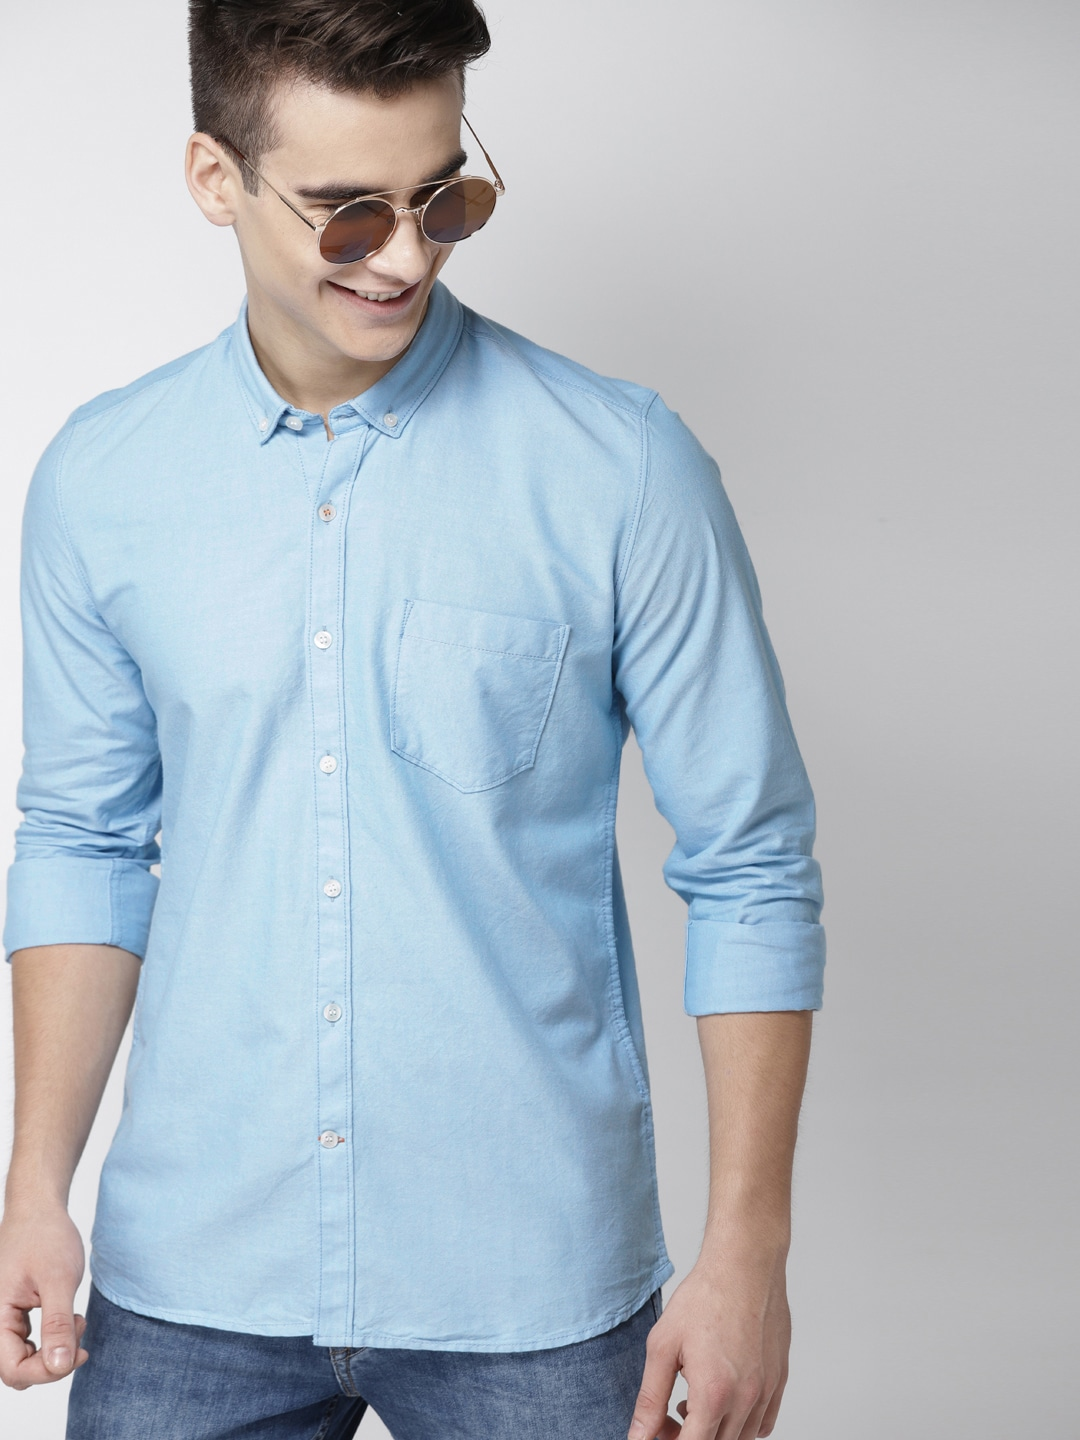 f3f219b21905f8 Blue Shirt - Buy Blue Colour Shirts Online at Best Price